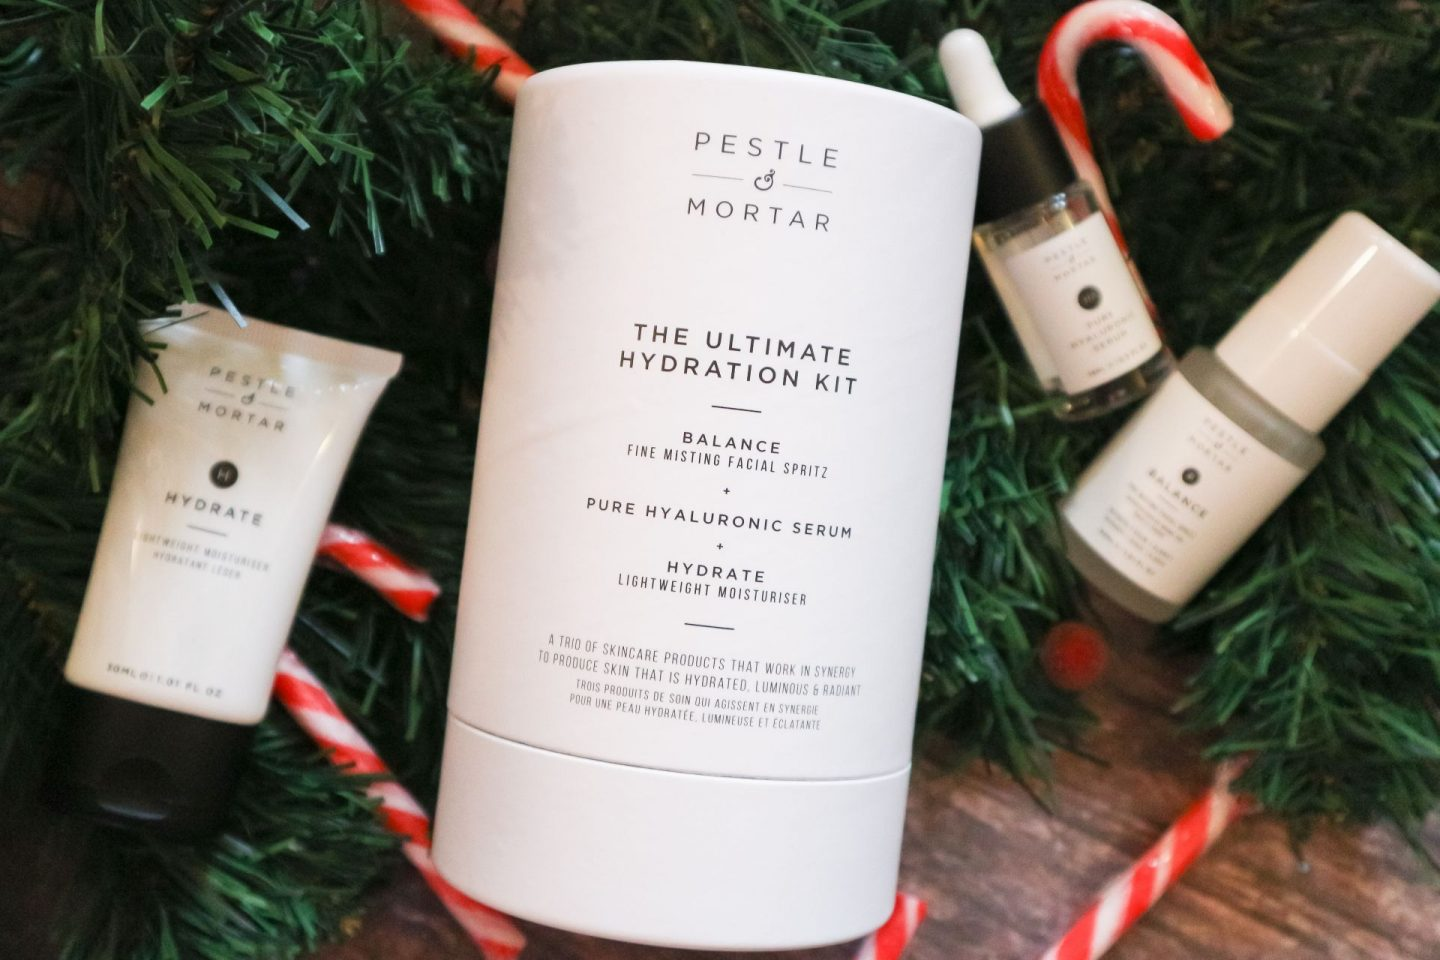 Pestle & Mortar The Ultimate Hydration Kit